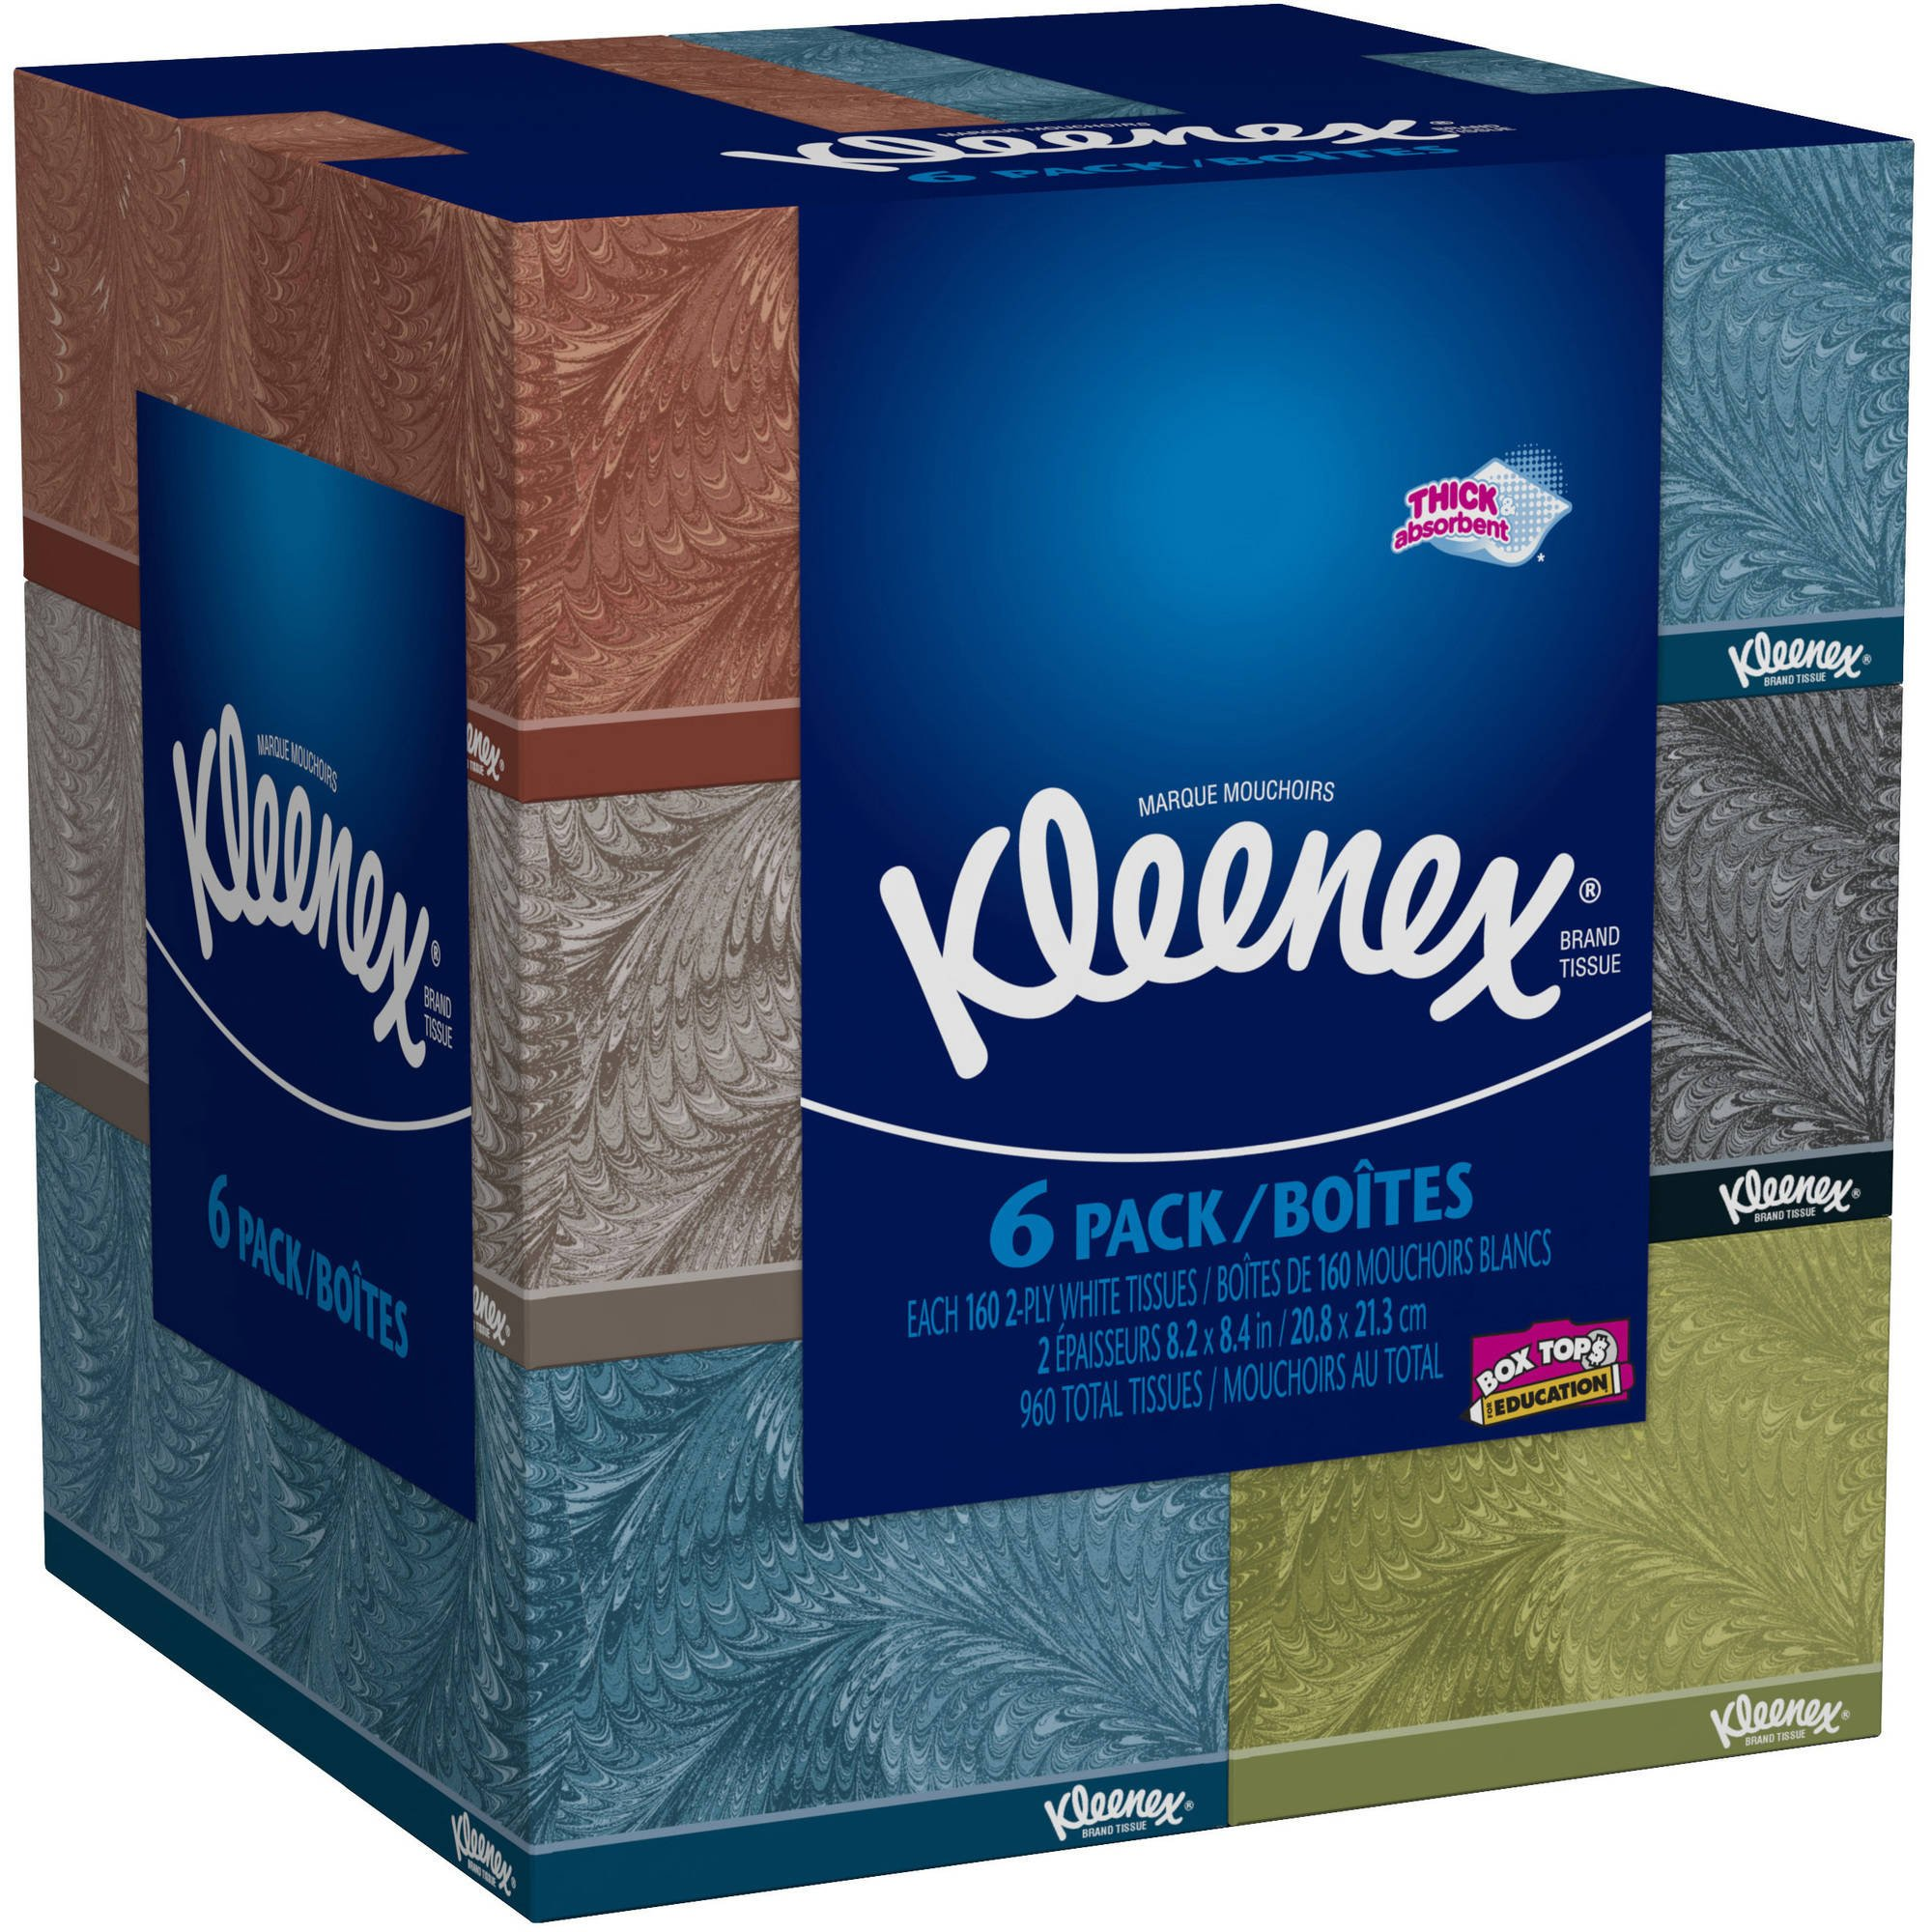 Kleenex Everyday Use, Soft Facial Tissues, Thick and Absorbent, 160, 2-PLY White Tissues, - 6 Bundle Pack - 960 Total Tissues. Variety of Assorted Colors and Designs.